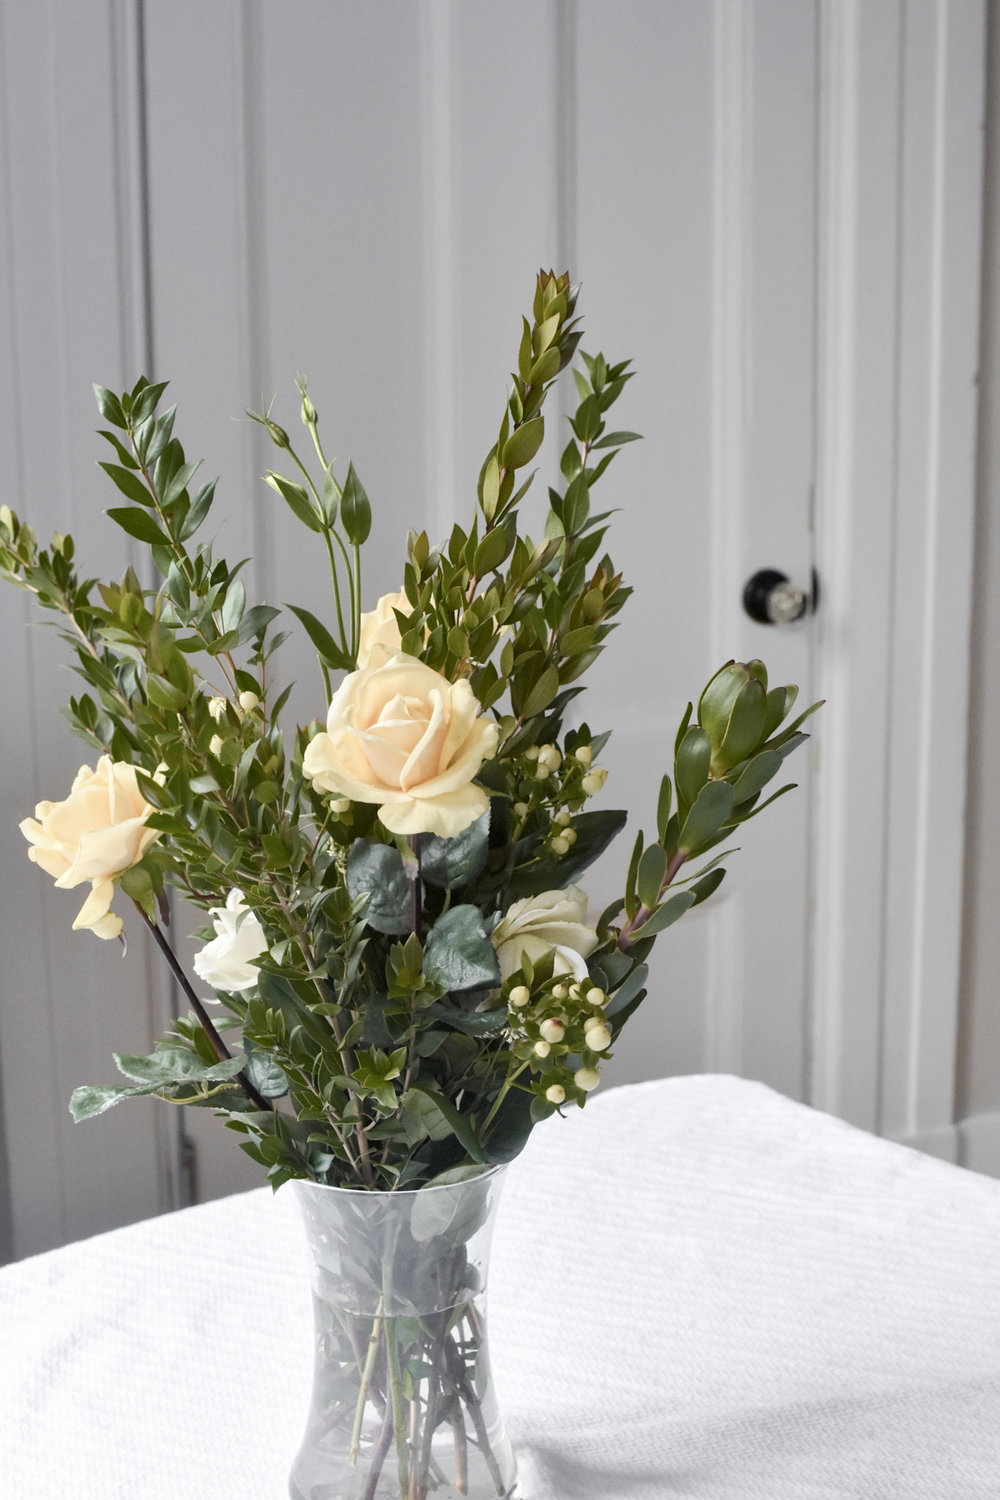 Faux roses pair beautifully with six-stem myrtle leaves and ivory hypericum berries.